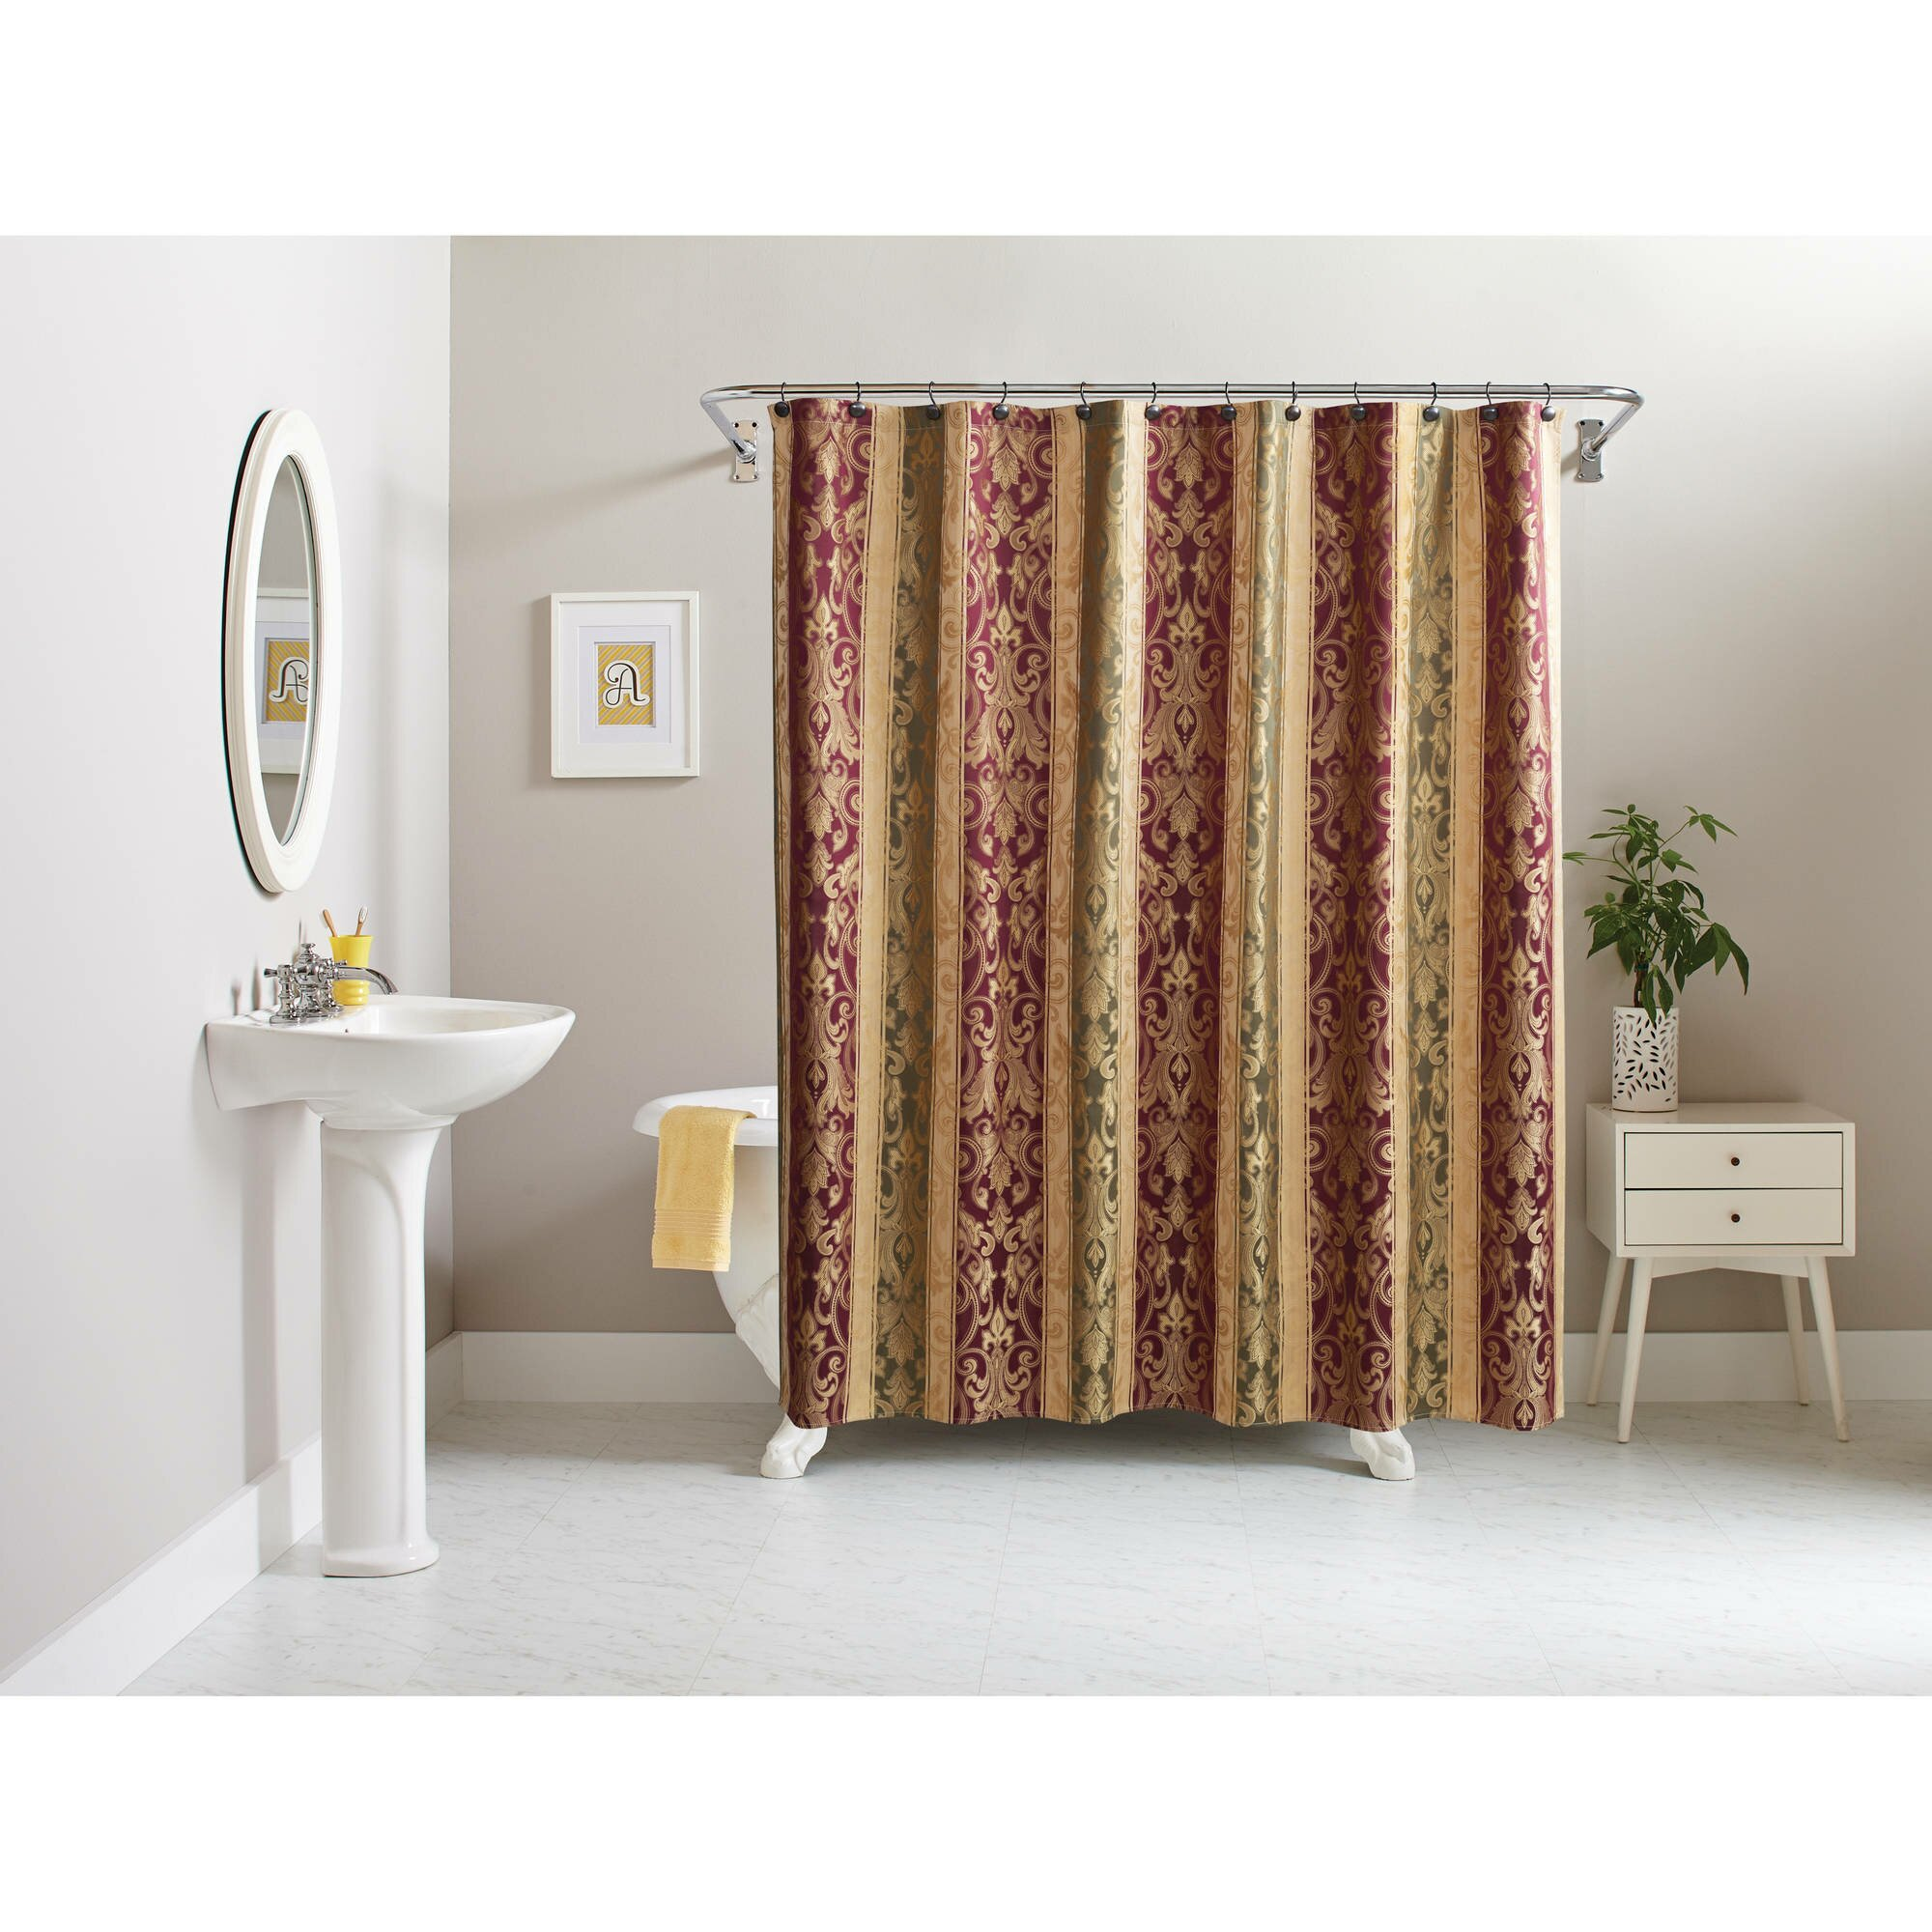 shower curtains wall living online room rugs lighting striped wonderful curtain shabby chic brown furniture cream sets tufted and diy decor me near white bathroom with